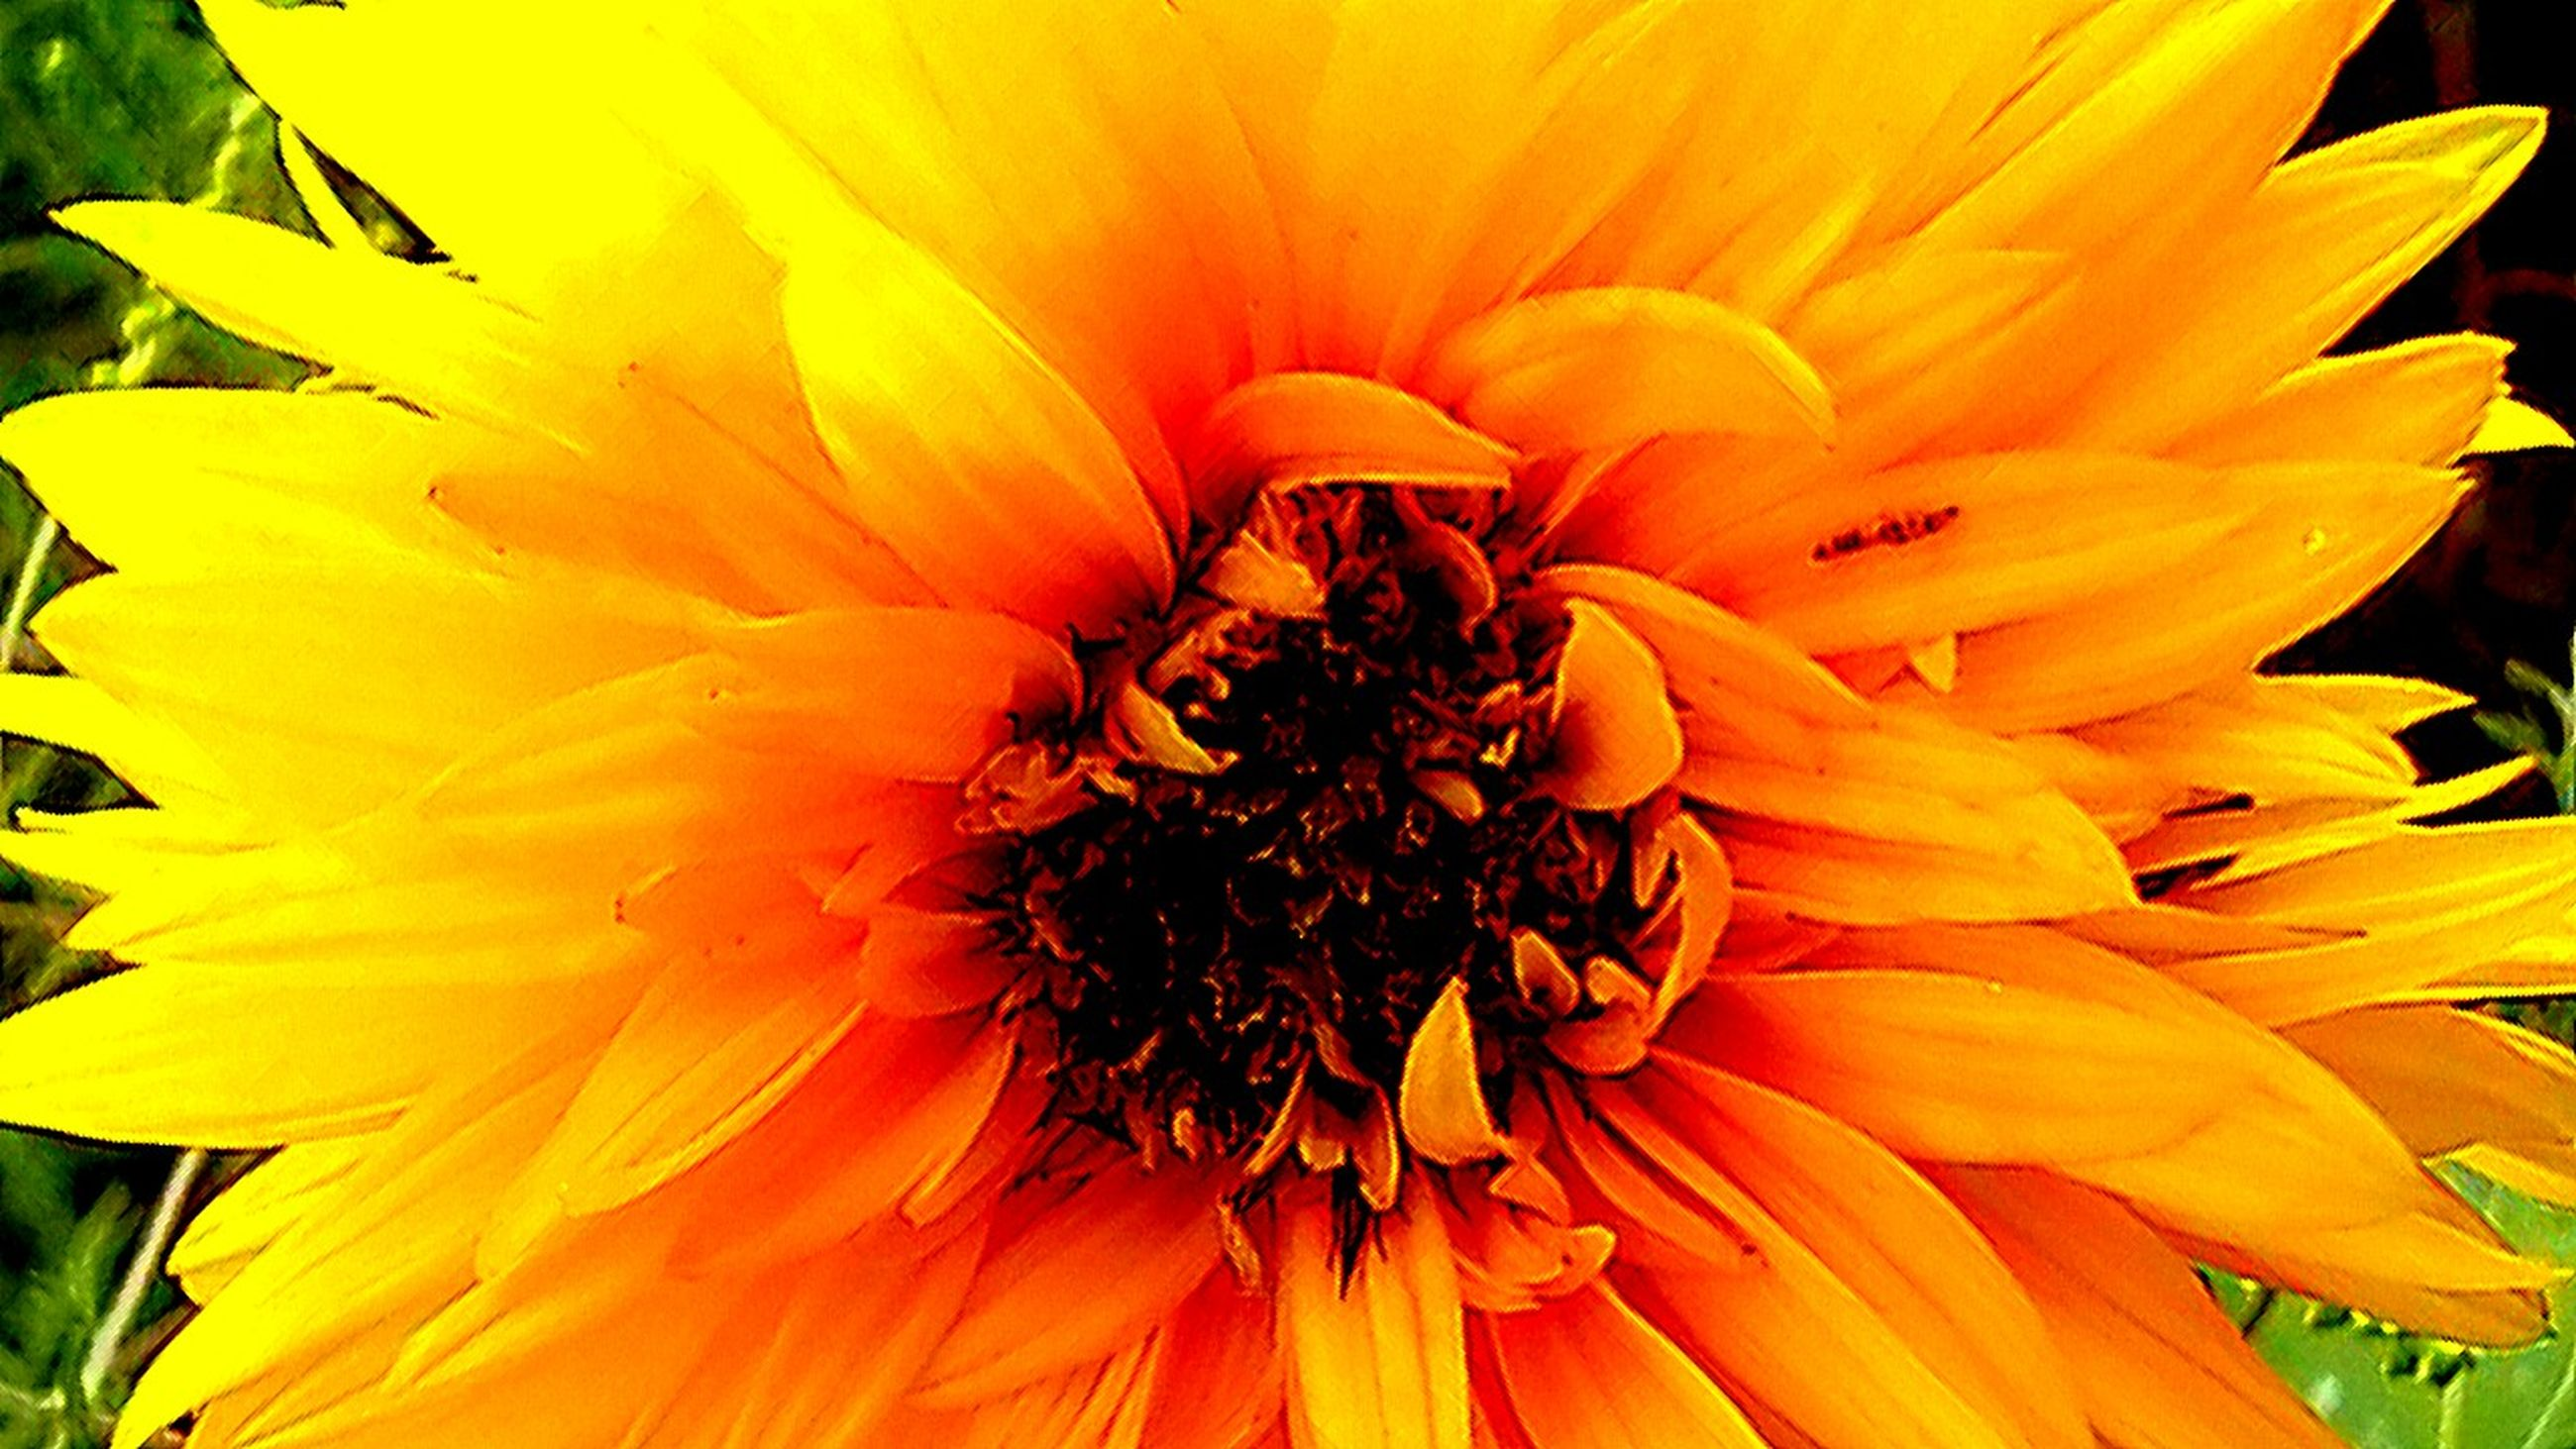 flower, petal, flower head, freshness, fragility, pollen, yellow, beauty in nature, single flower, growth, close-up, blooming, nature, stamen, sunflower, plant, in bloom, orange color, focus on foreground, no people